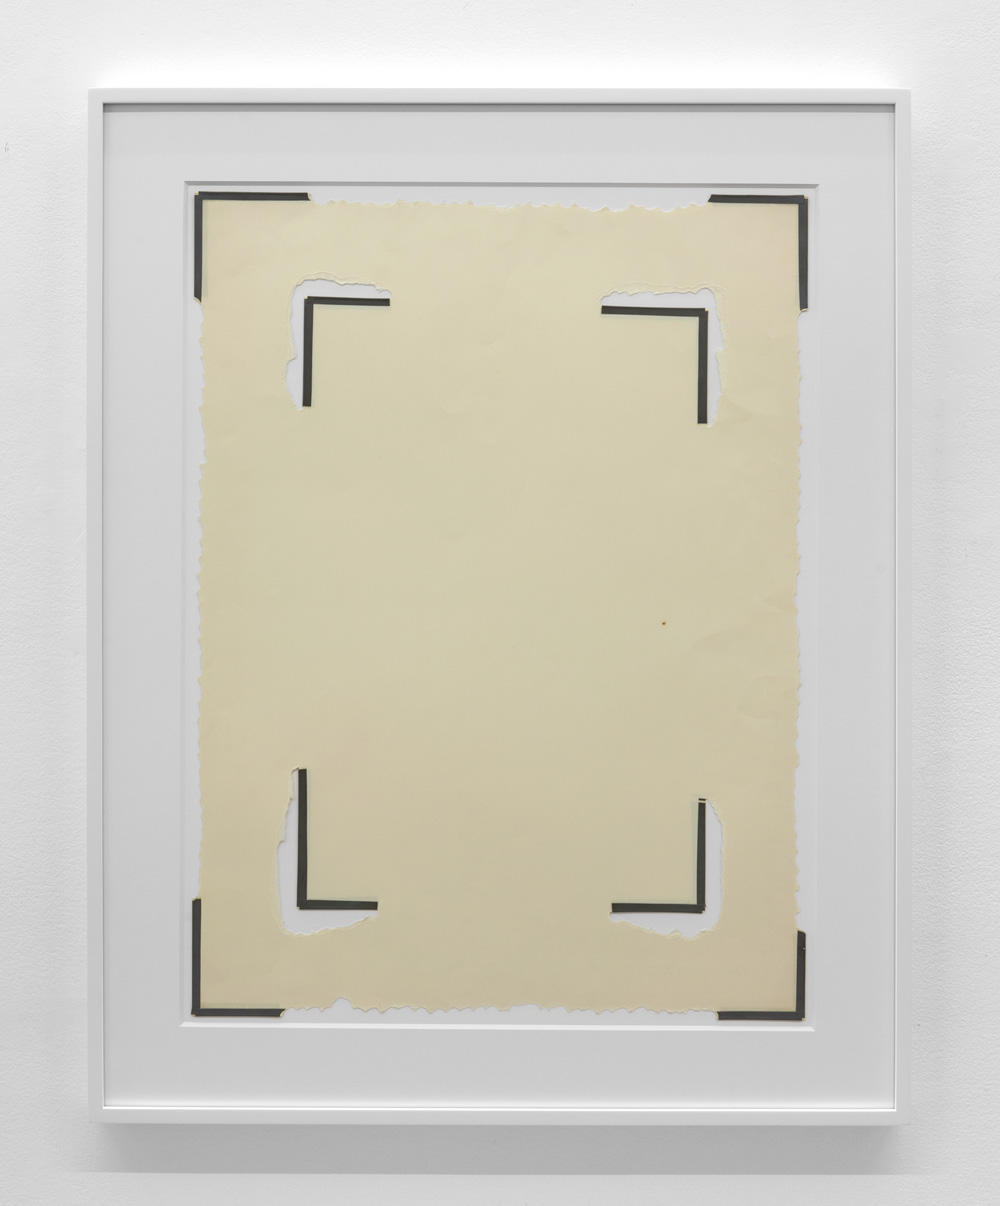 Dependent Space , 1974 Vinyl tape on paper 28 1/8 x 20 7/8 inches  71.4 x 53 cm